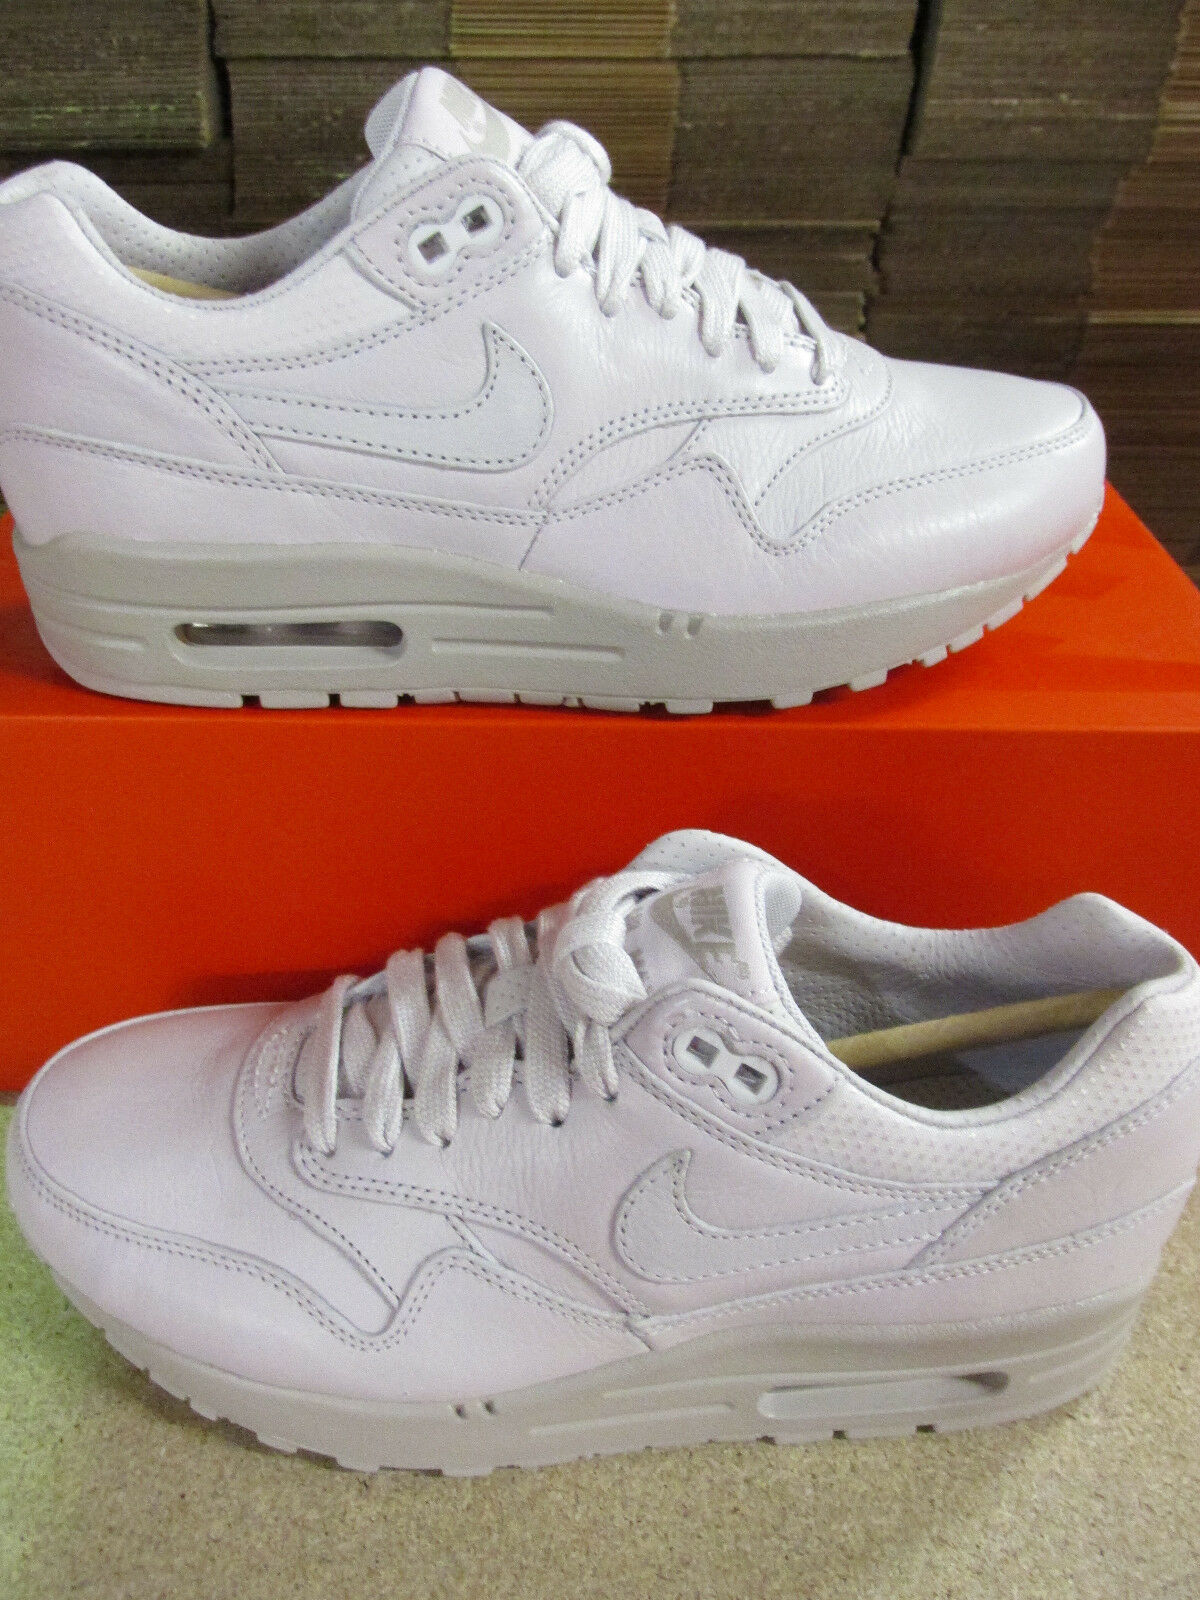 Nike Air Max 1 Pinnacle Femme Running Trainers 839608 2018 Sneakers Chaussures